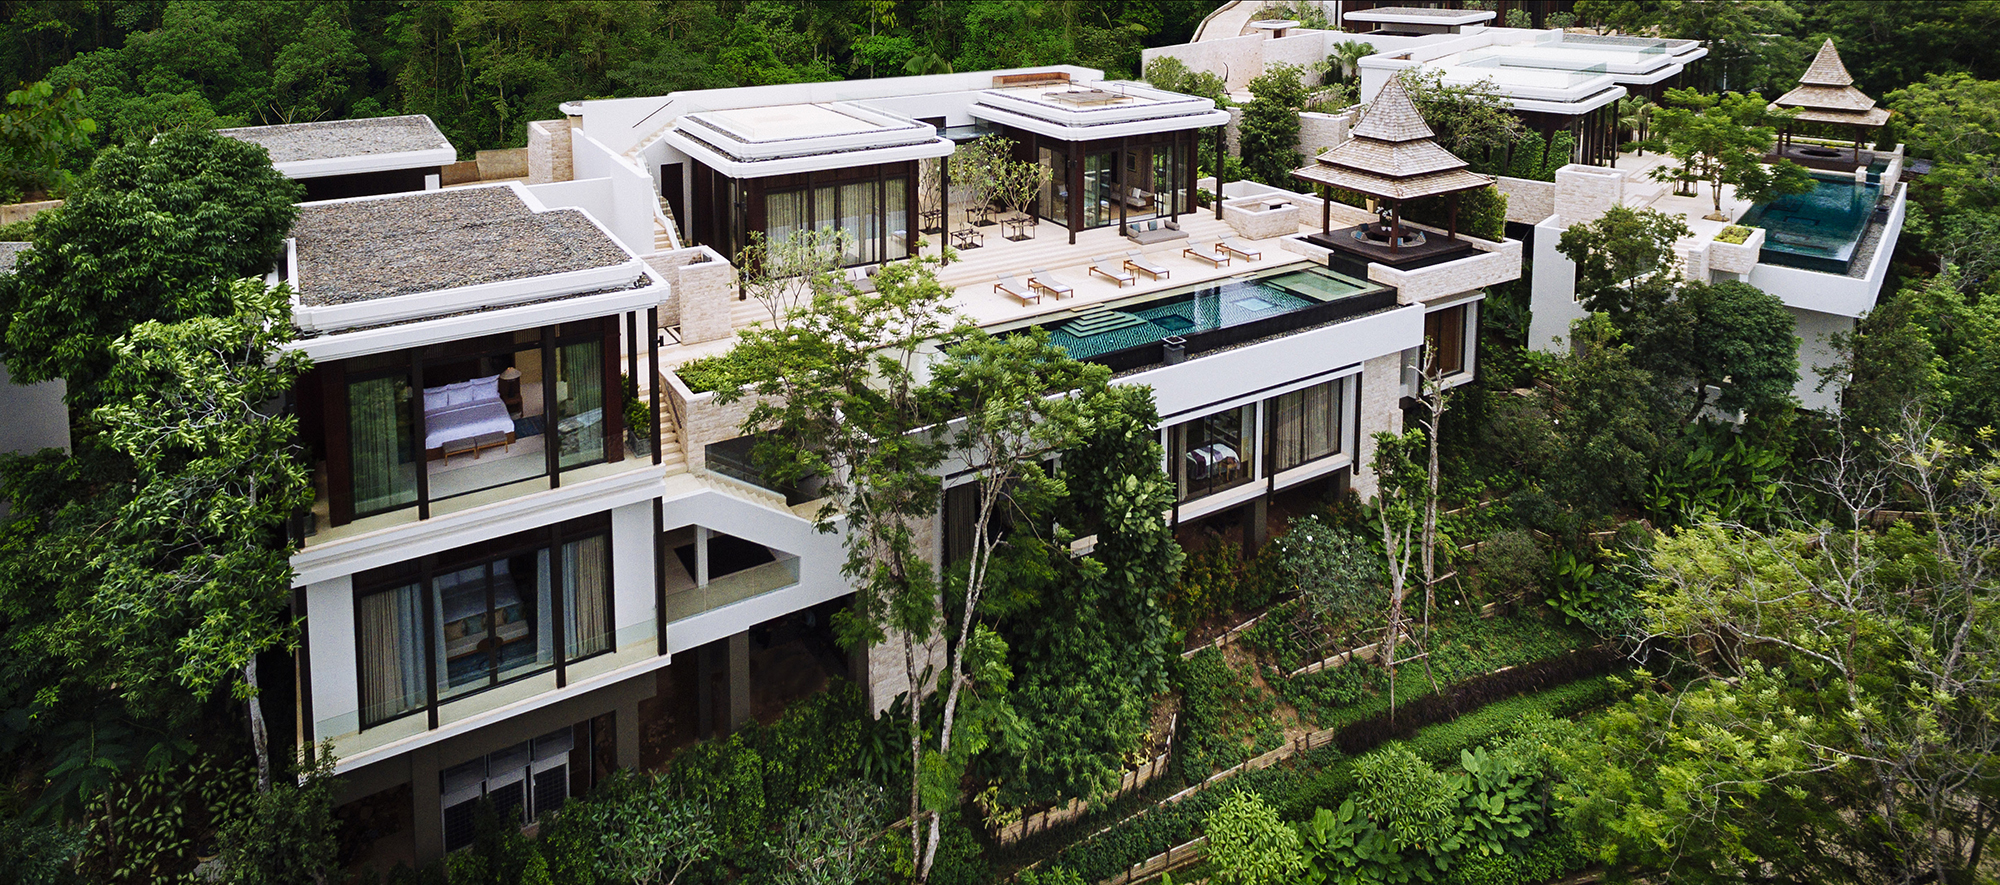 A villa to rent or purchase at Layan Residences by Anantara